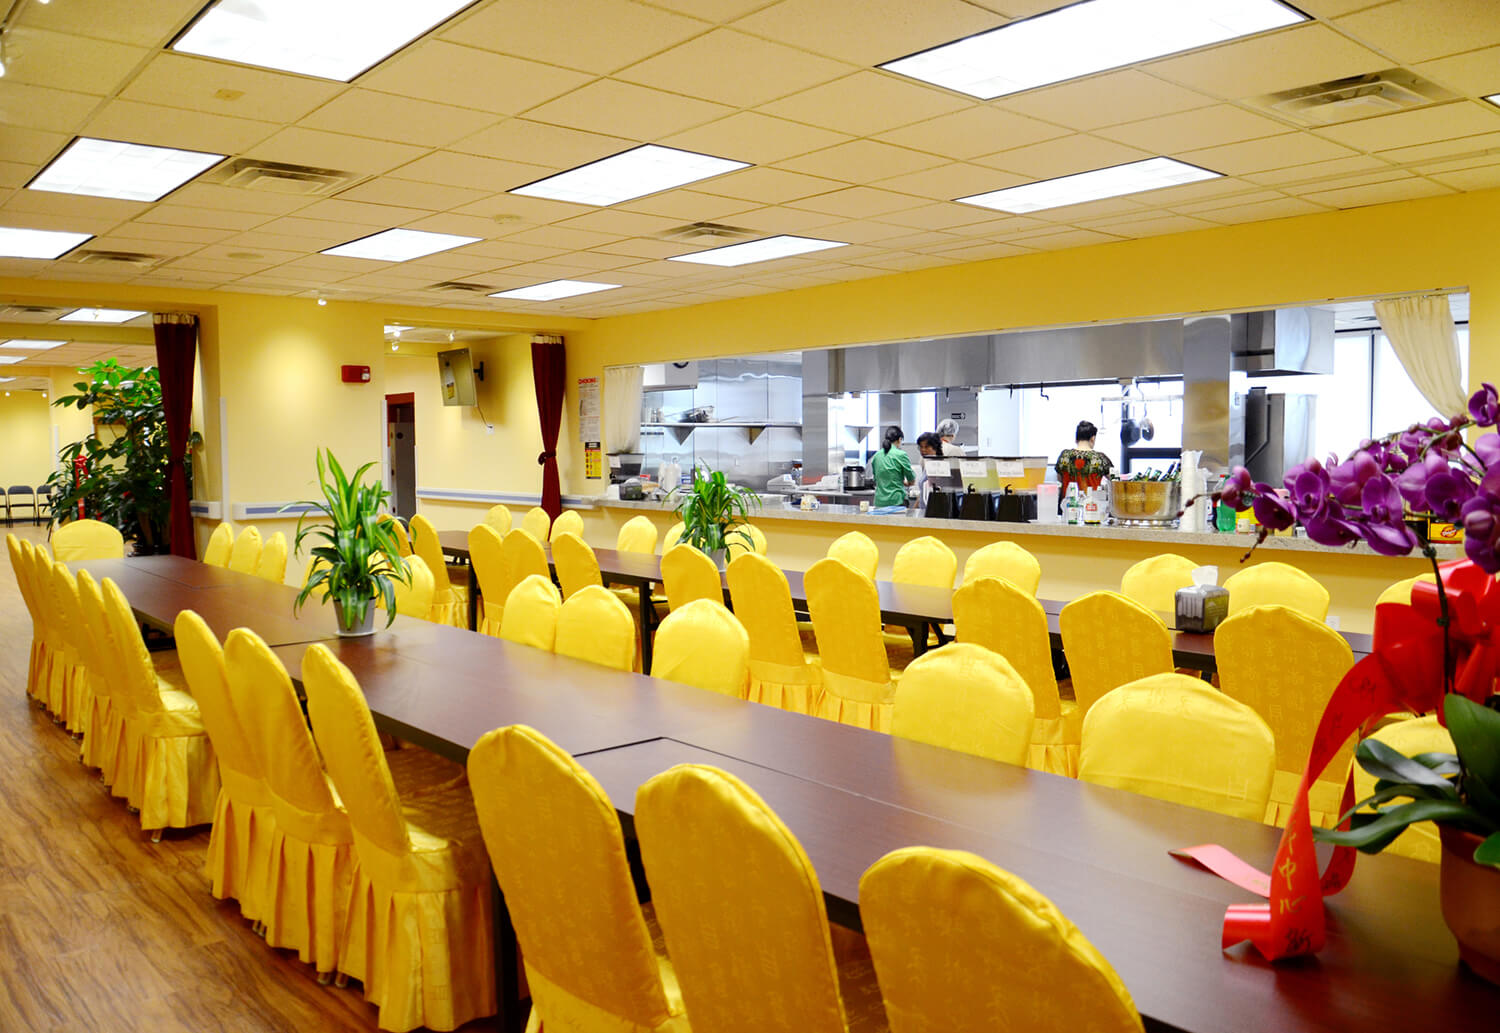 sunlight-healthy-adult-senior-care-dining-hall-kitchen